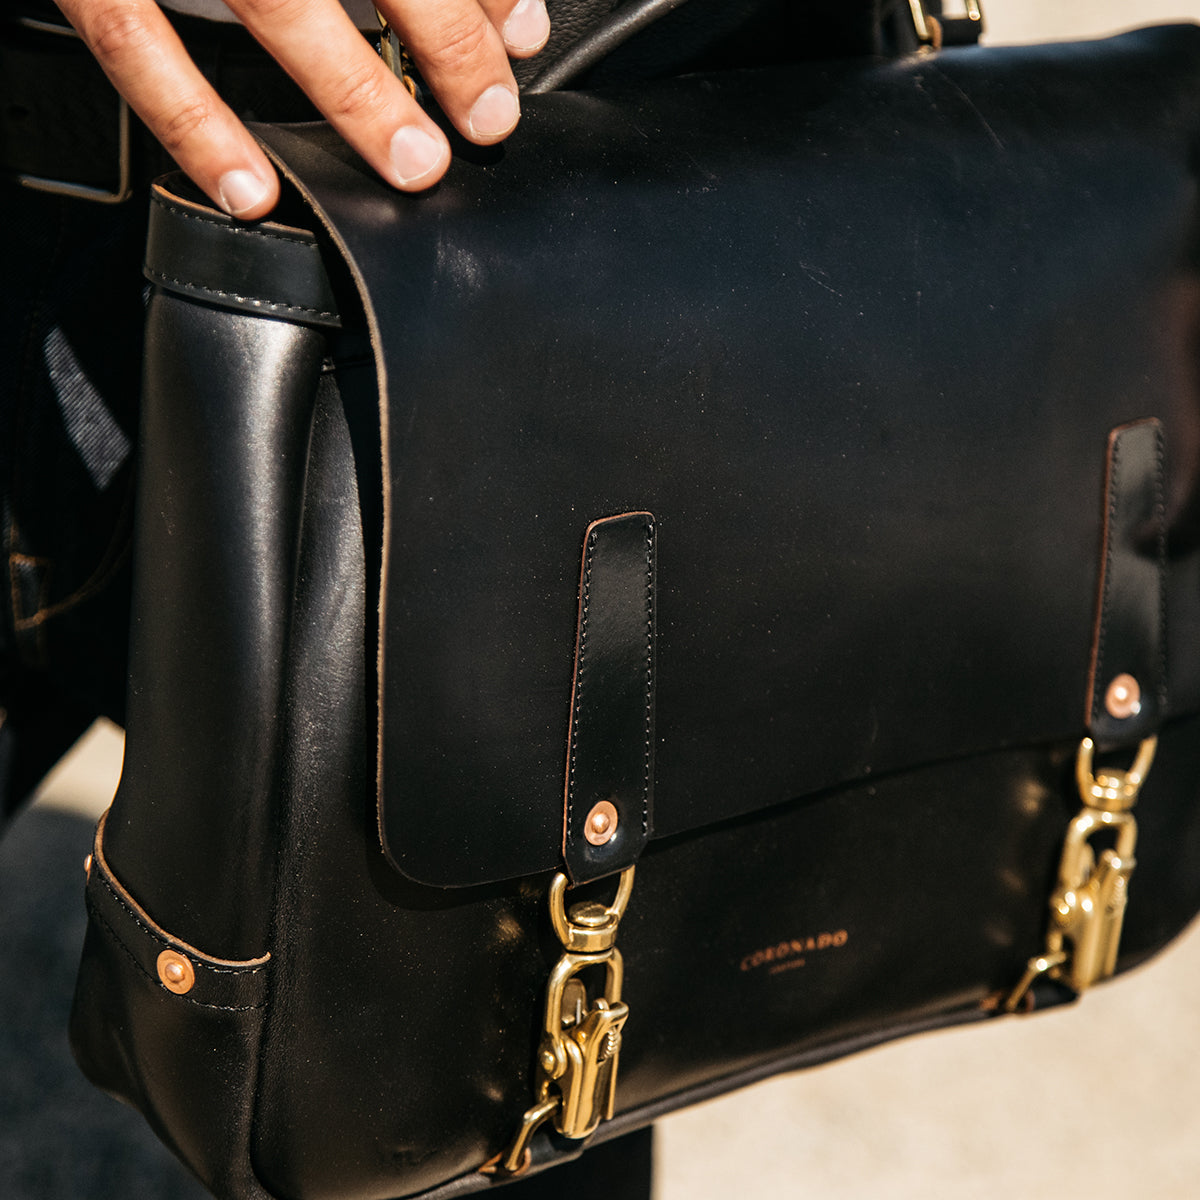 Chicago Mail Bag No. 721 (Black) IN-PRODUCTION